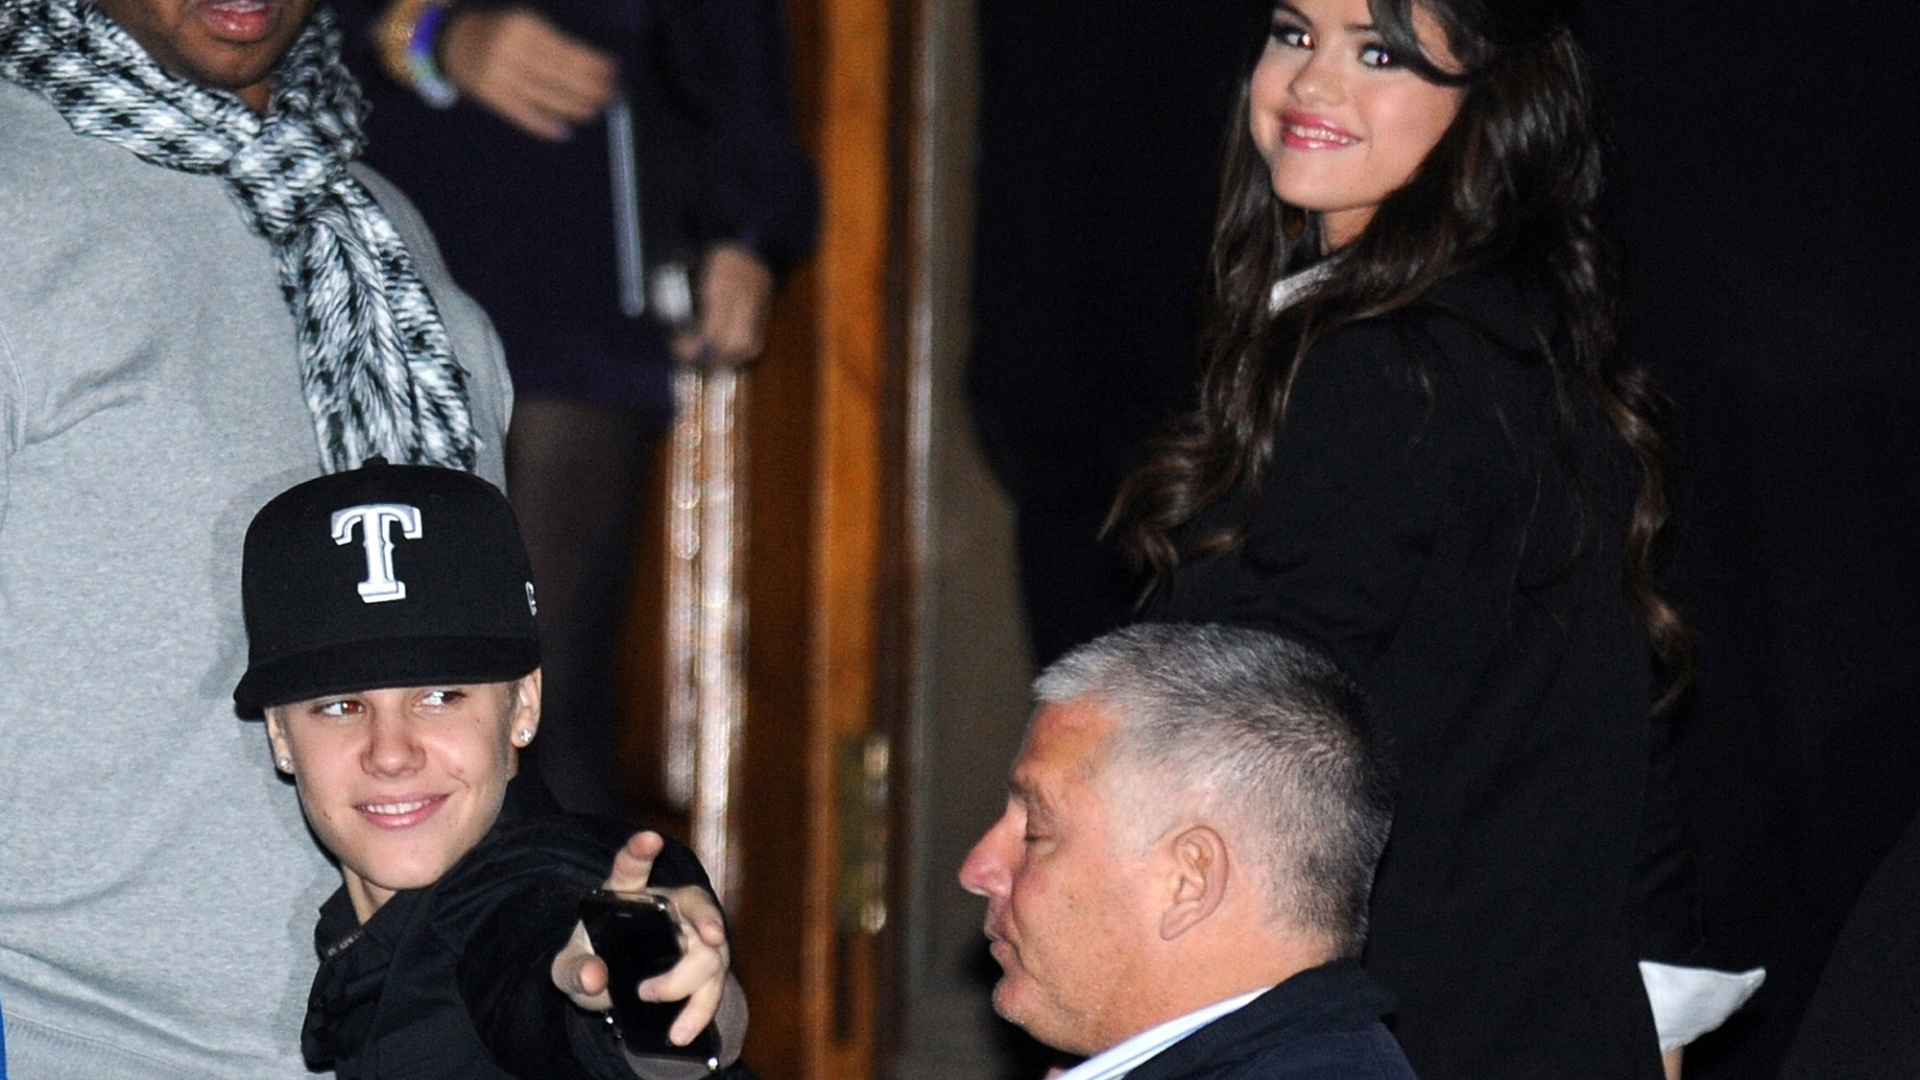 Justin Bieber e Selena Gomez chegam de mos dadas em um almoo promovido pela MTV durante o EMA 2011, em Belfast, na Irlanda do Norte (5/11/2011)